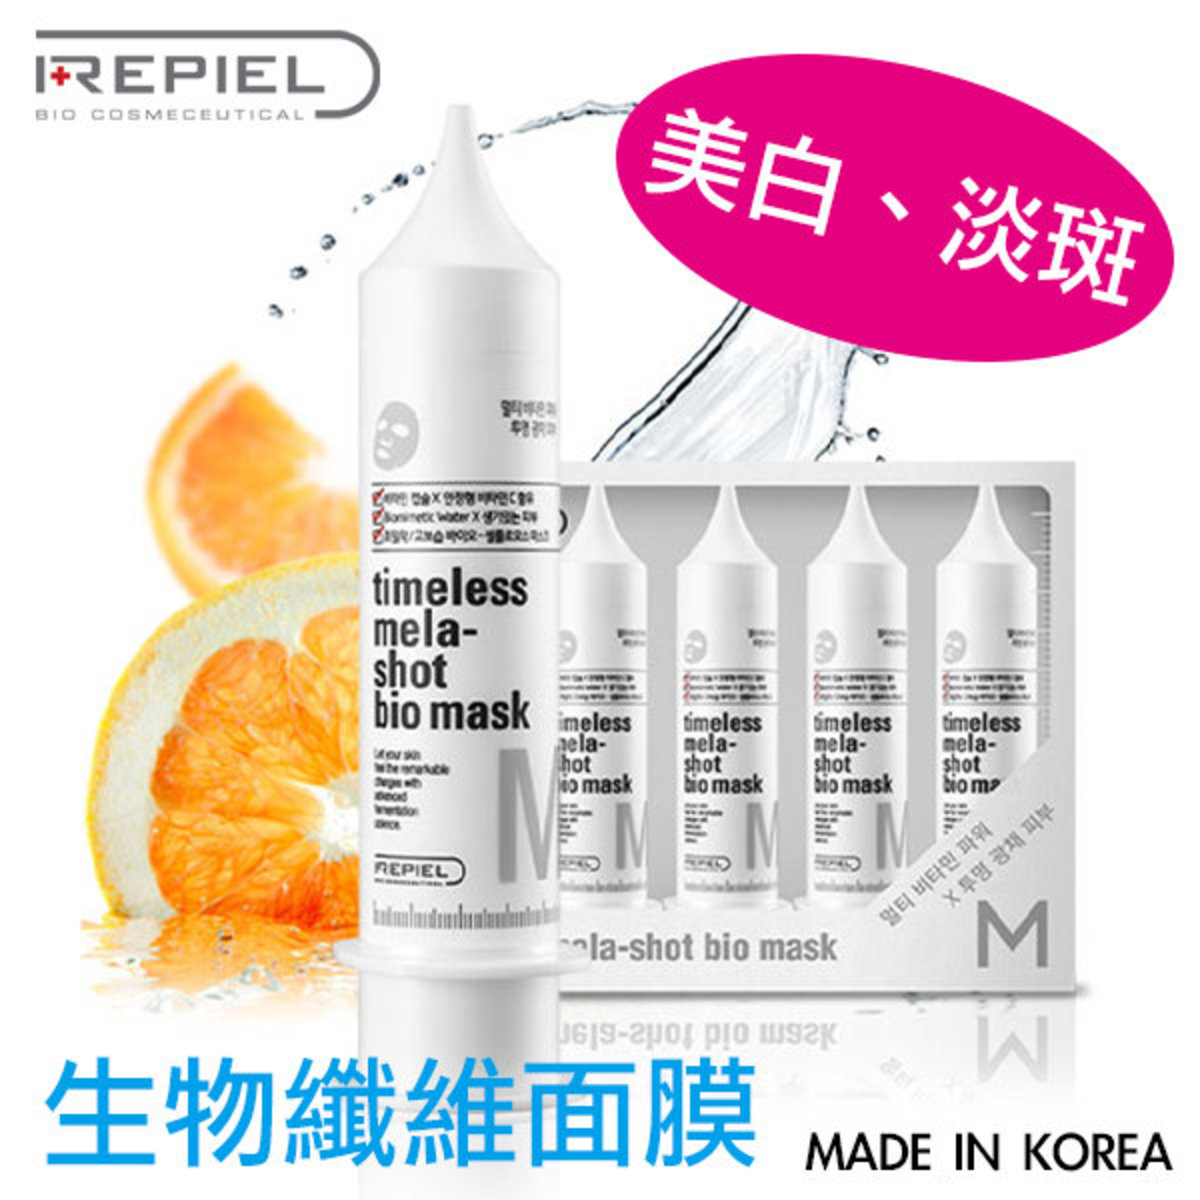 Timeless Redness Melal-Shot Bio Mask 25ml x 5 pieces - (Authorised Goods)